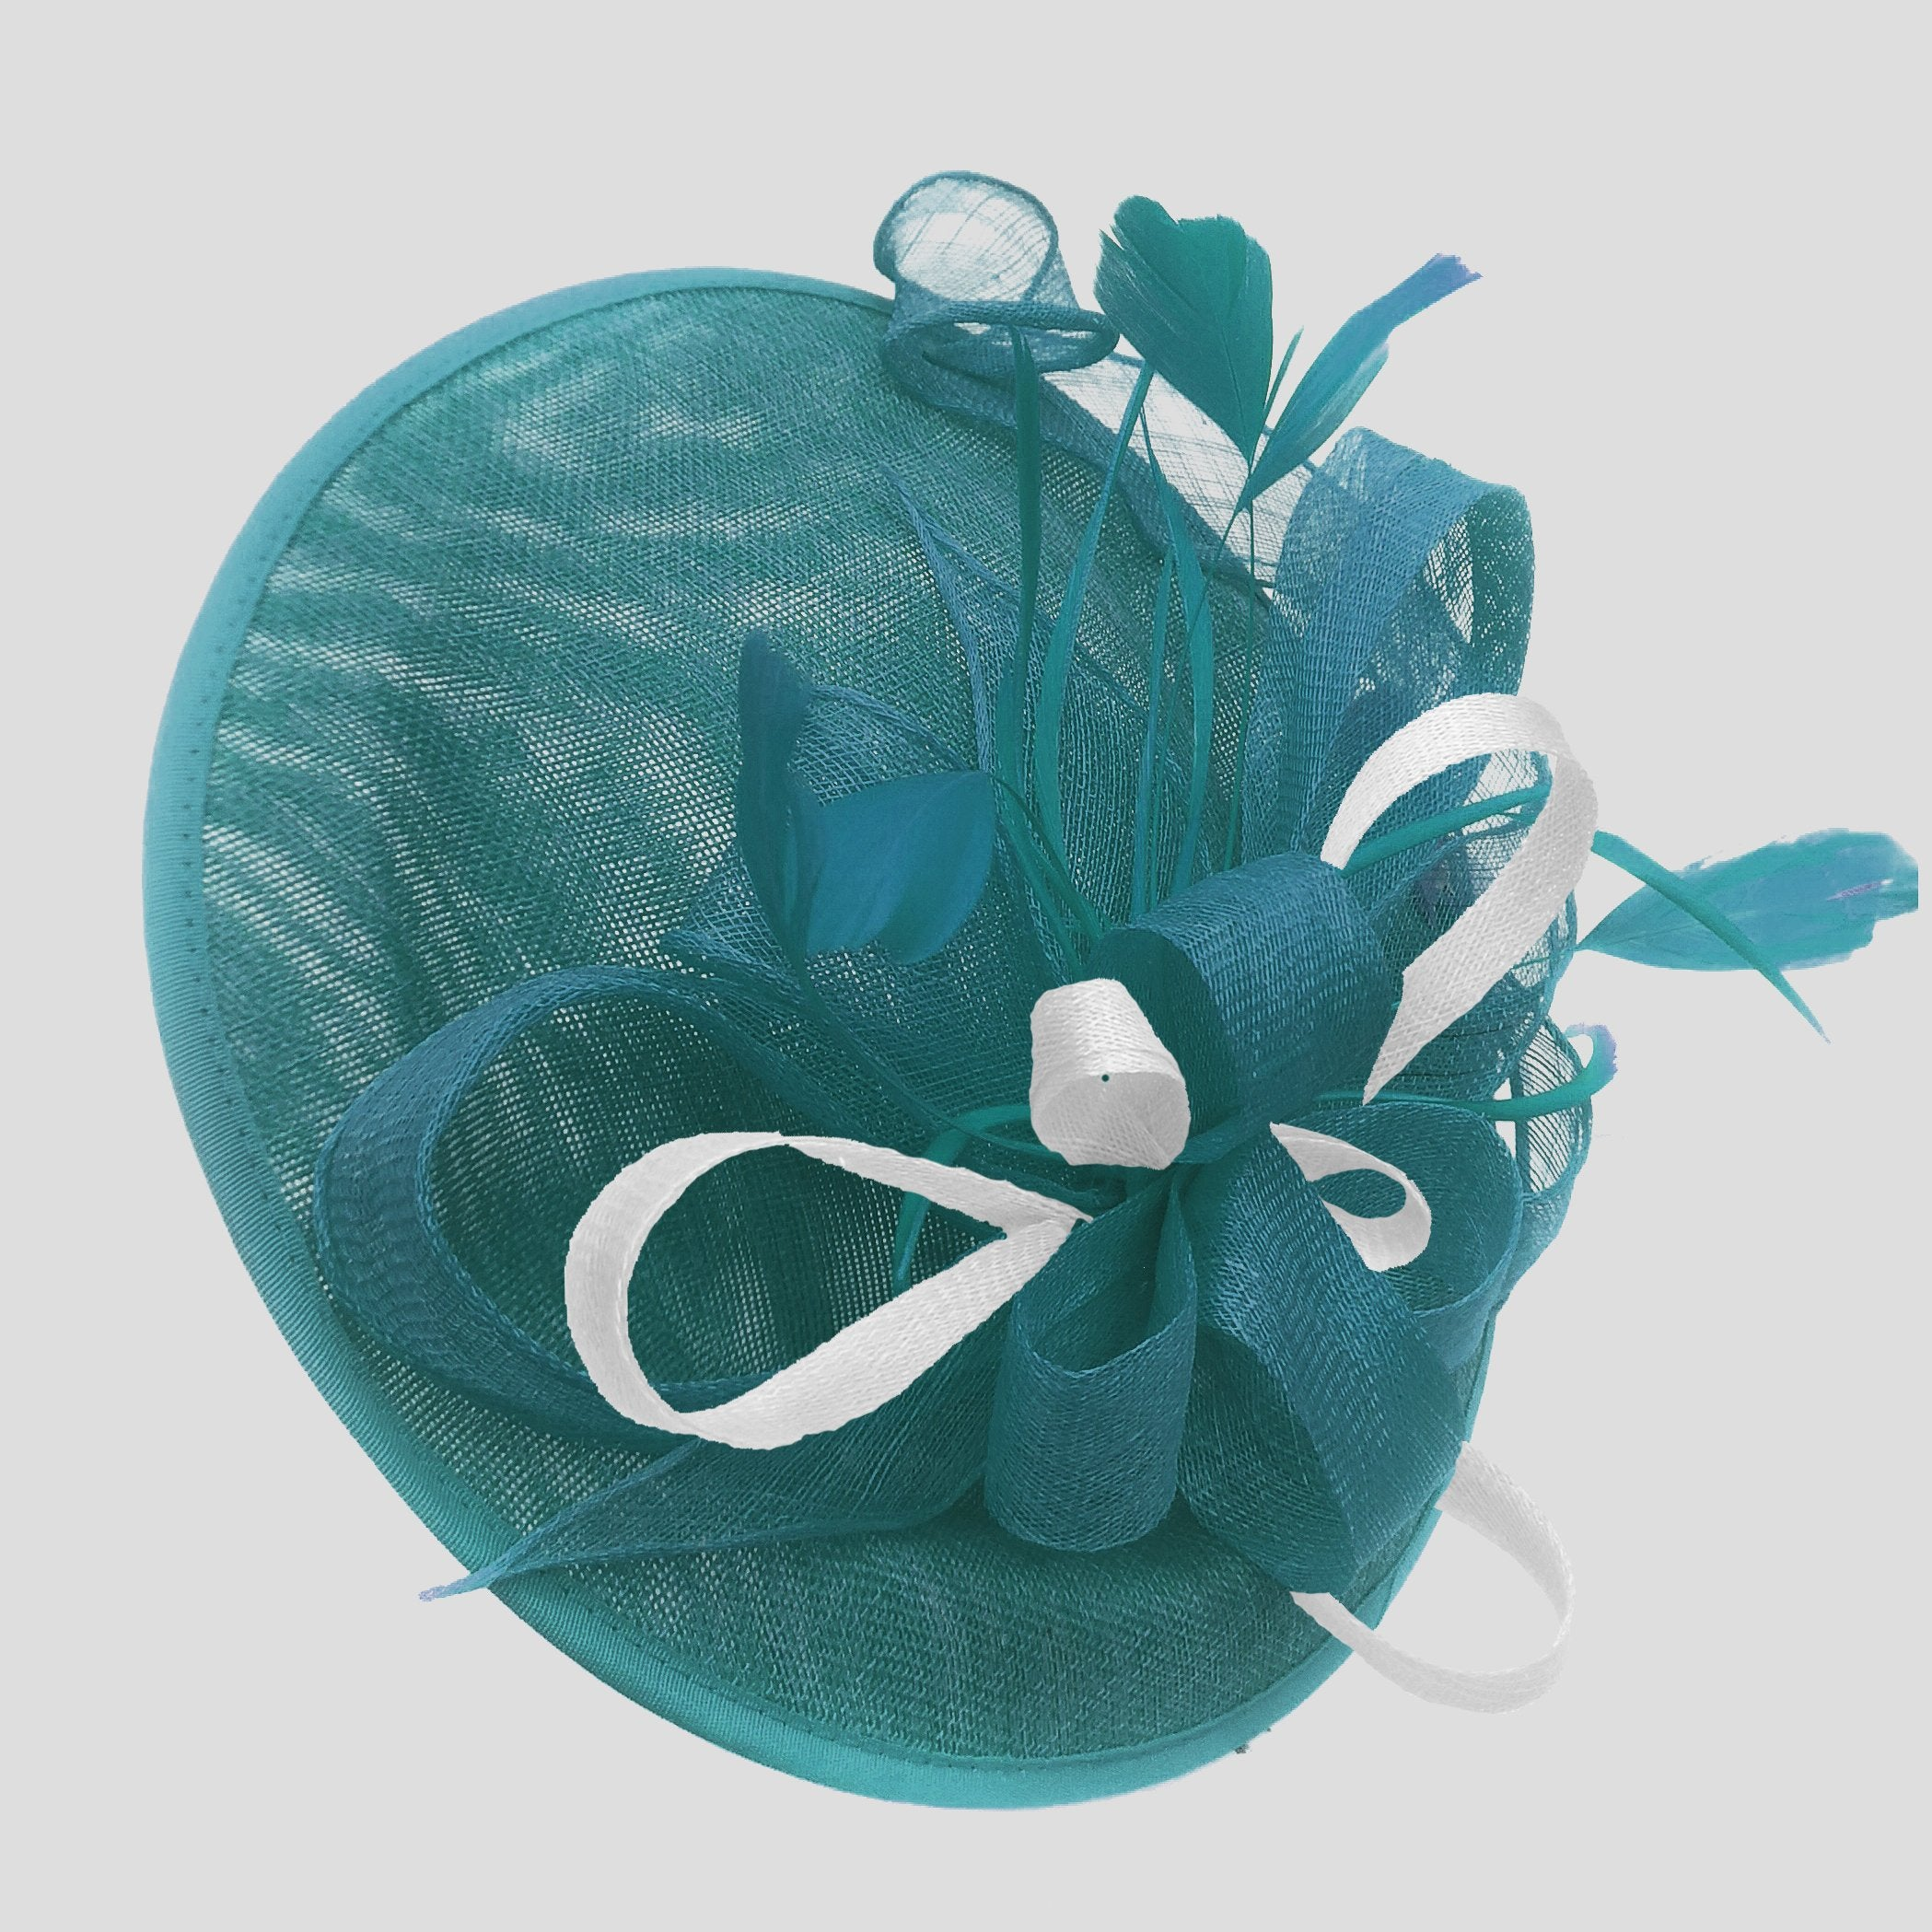 Caprilite Big Saucer Sinamay Teal Turquoise & White Mixed Colour Fascinator On Headband